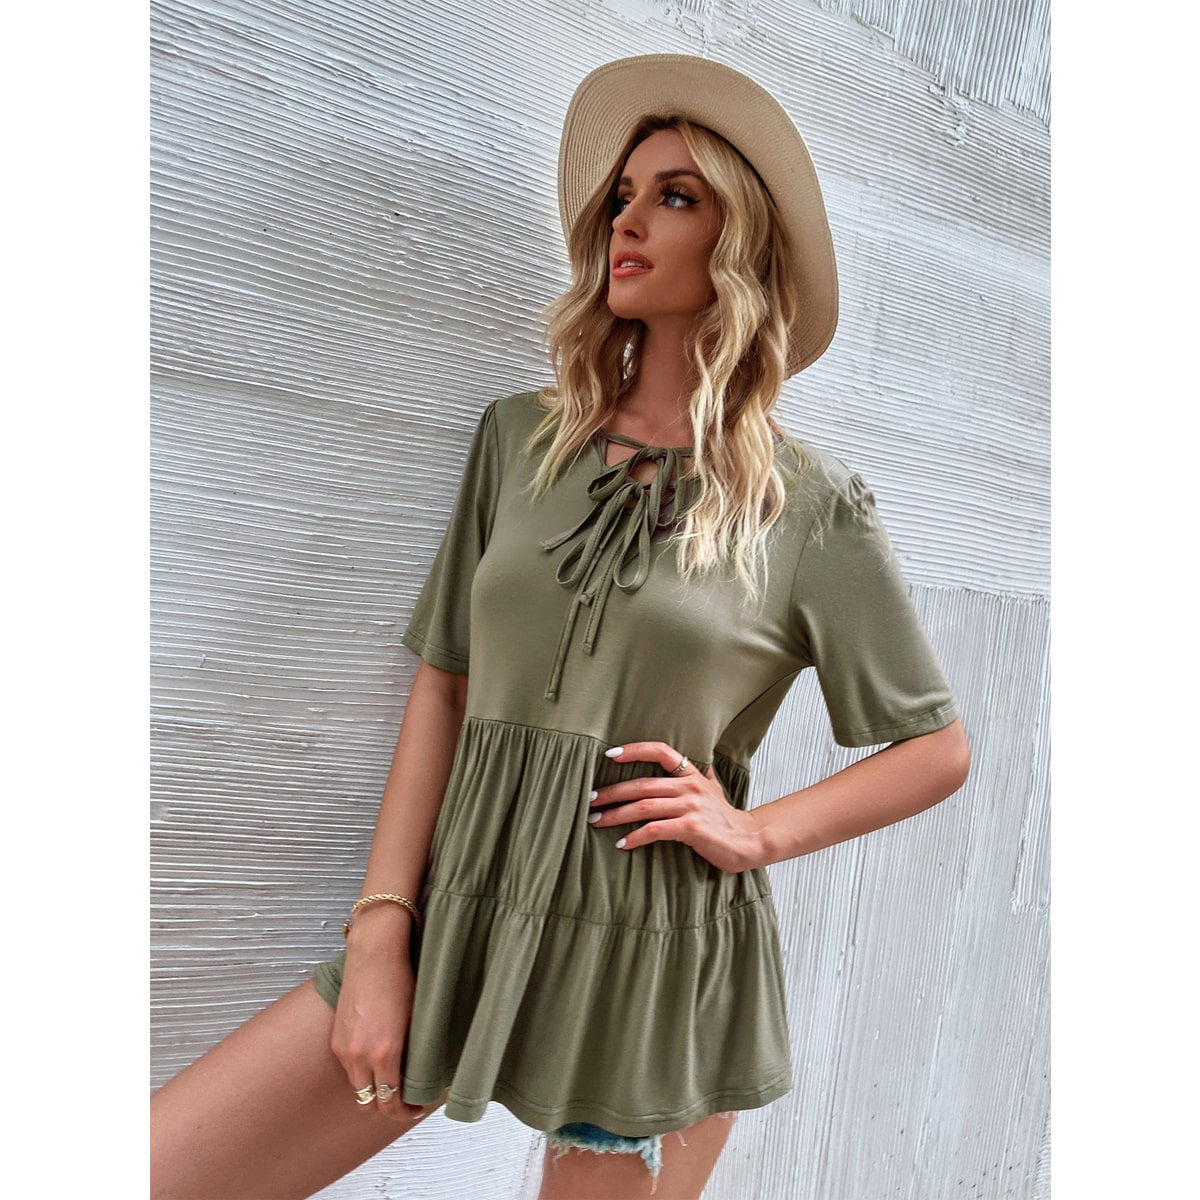 Lace Up Ruffle Hem Tee, SHEIN  - buy with discount